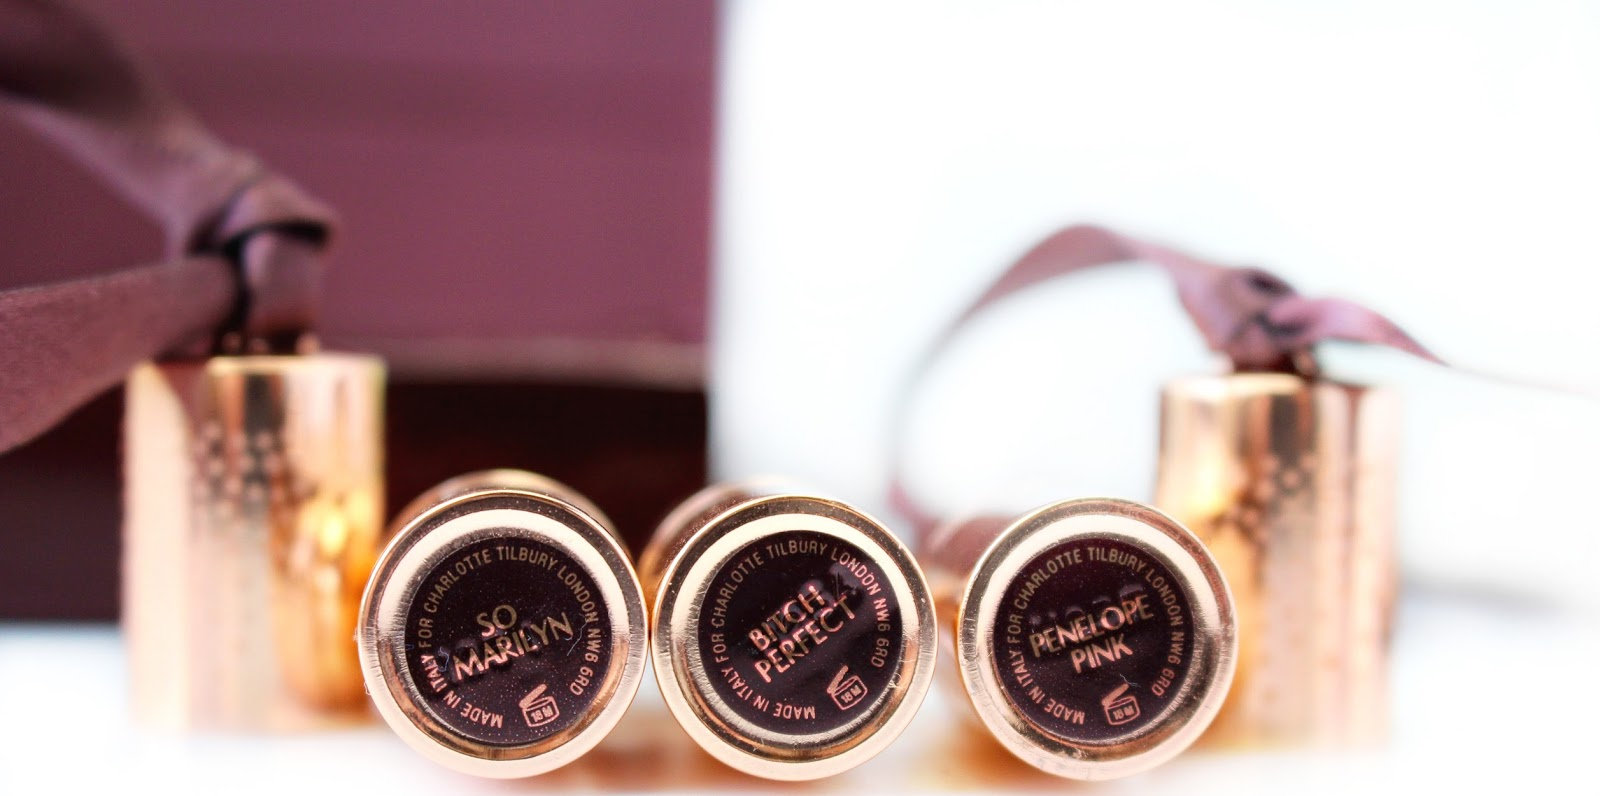 Charlotte Tilbury Mini Lipstick Charms Review